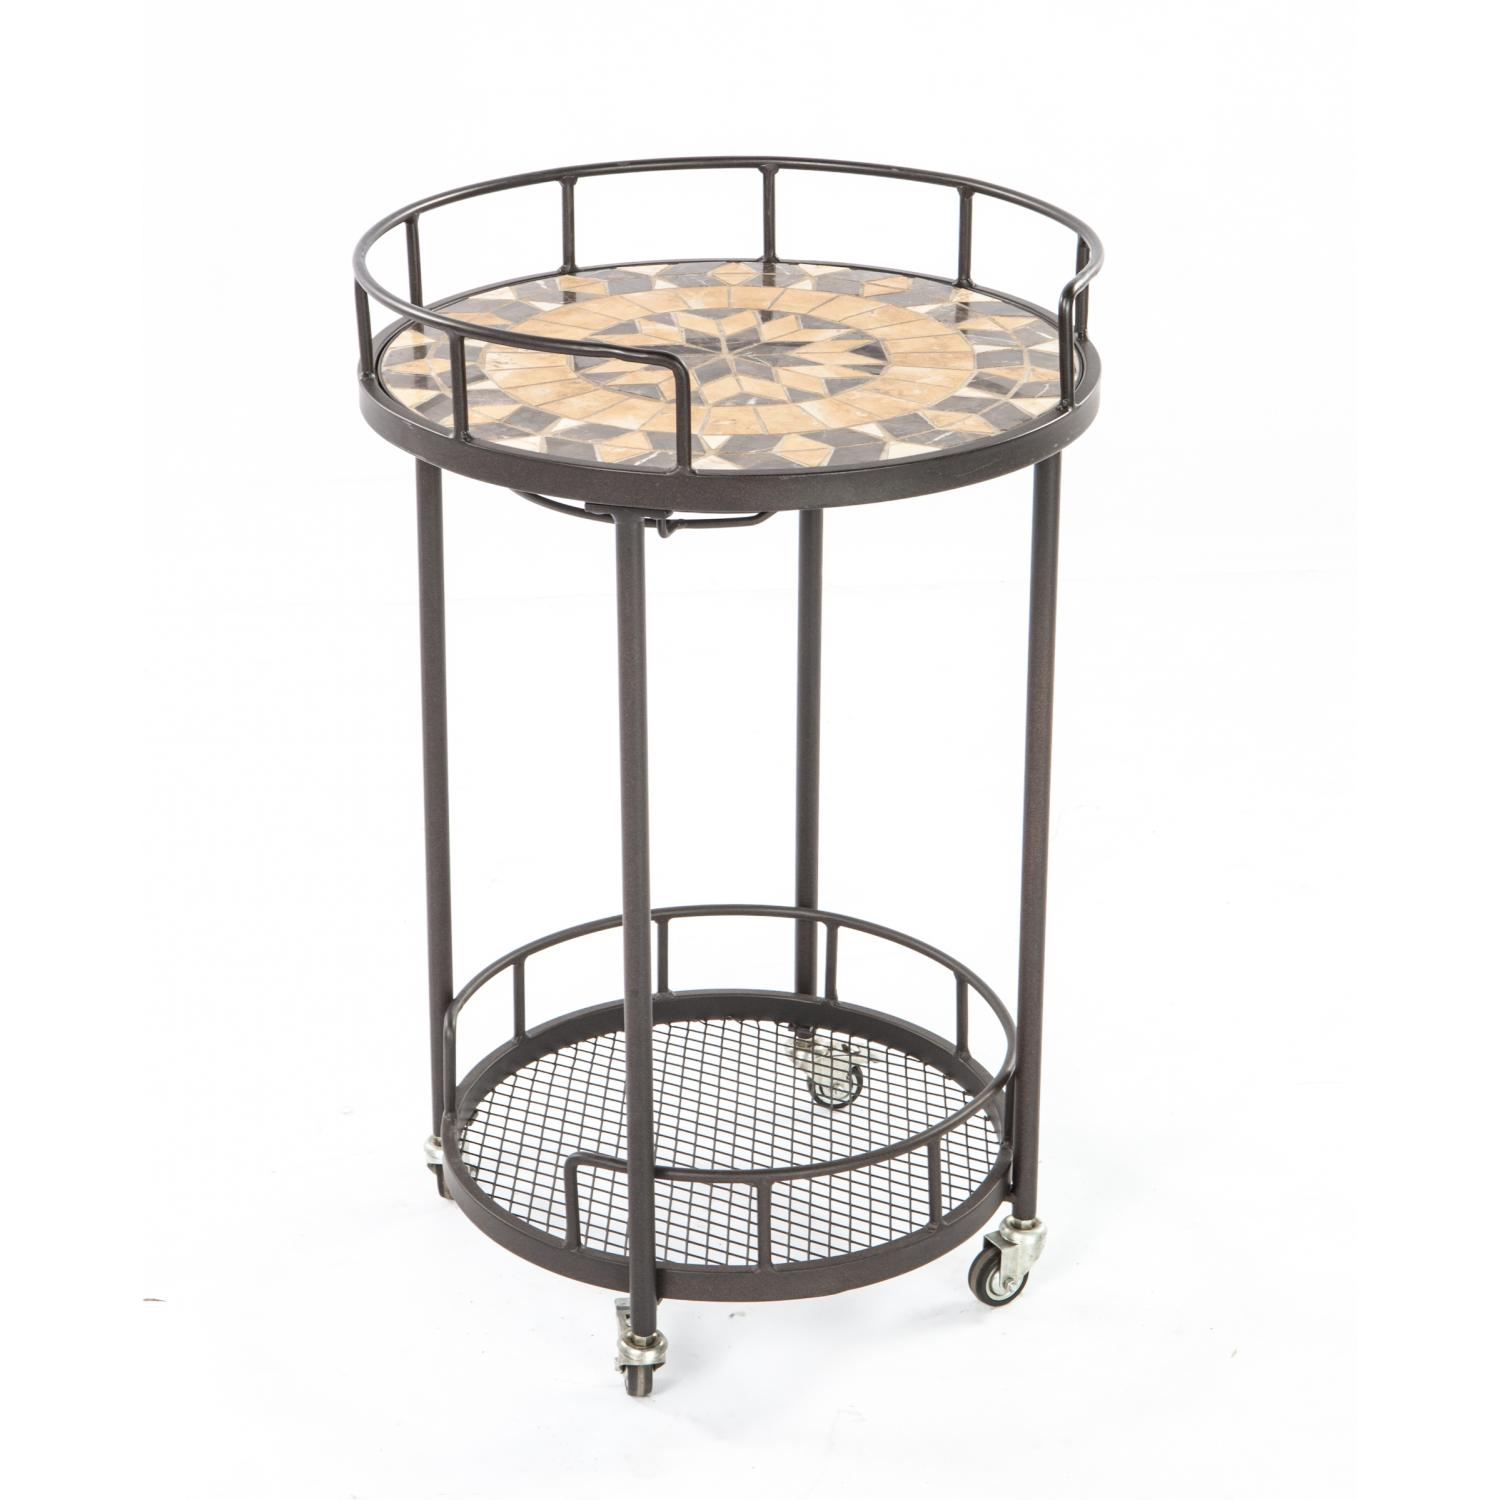 Alfresco Home Loretto Mosaic Outdoor Serving Cart at Sears.com